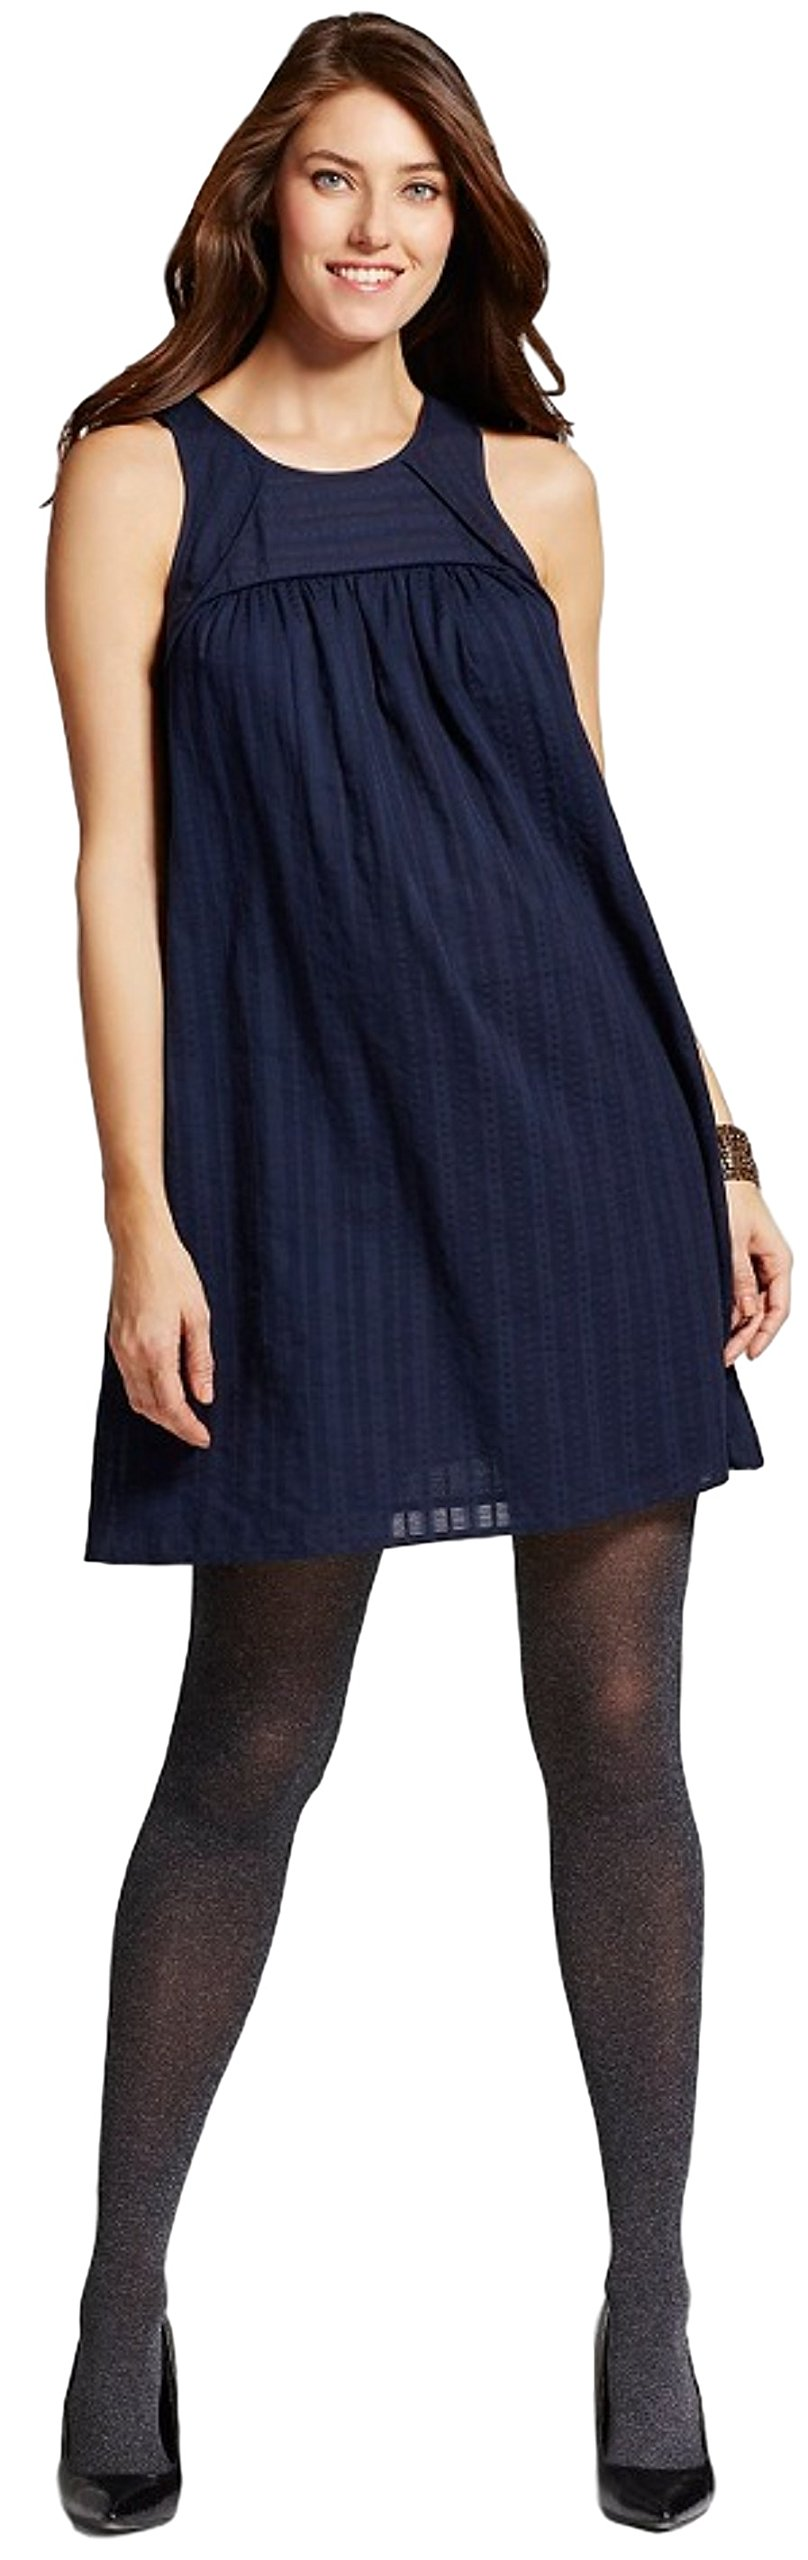 Liz Lange Maternity Women's Striped Gauze Dress (Large, Dark Shadow Blue)